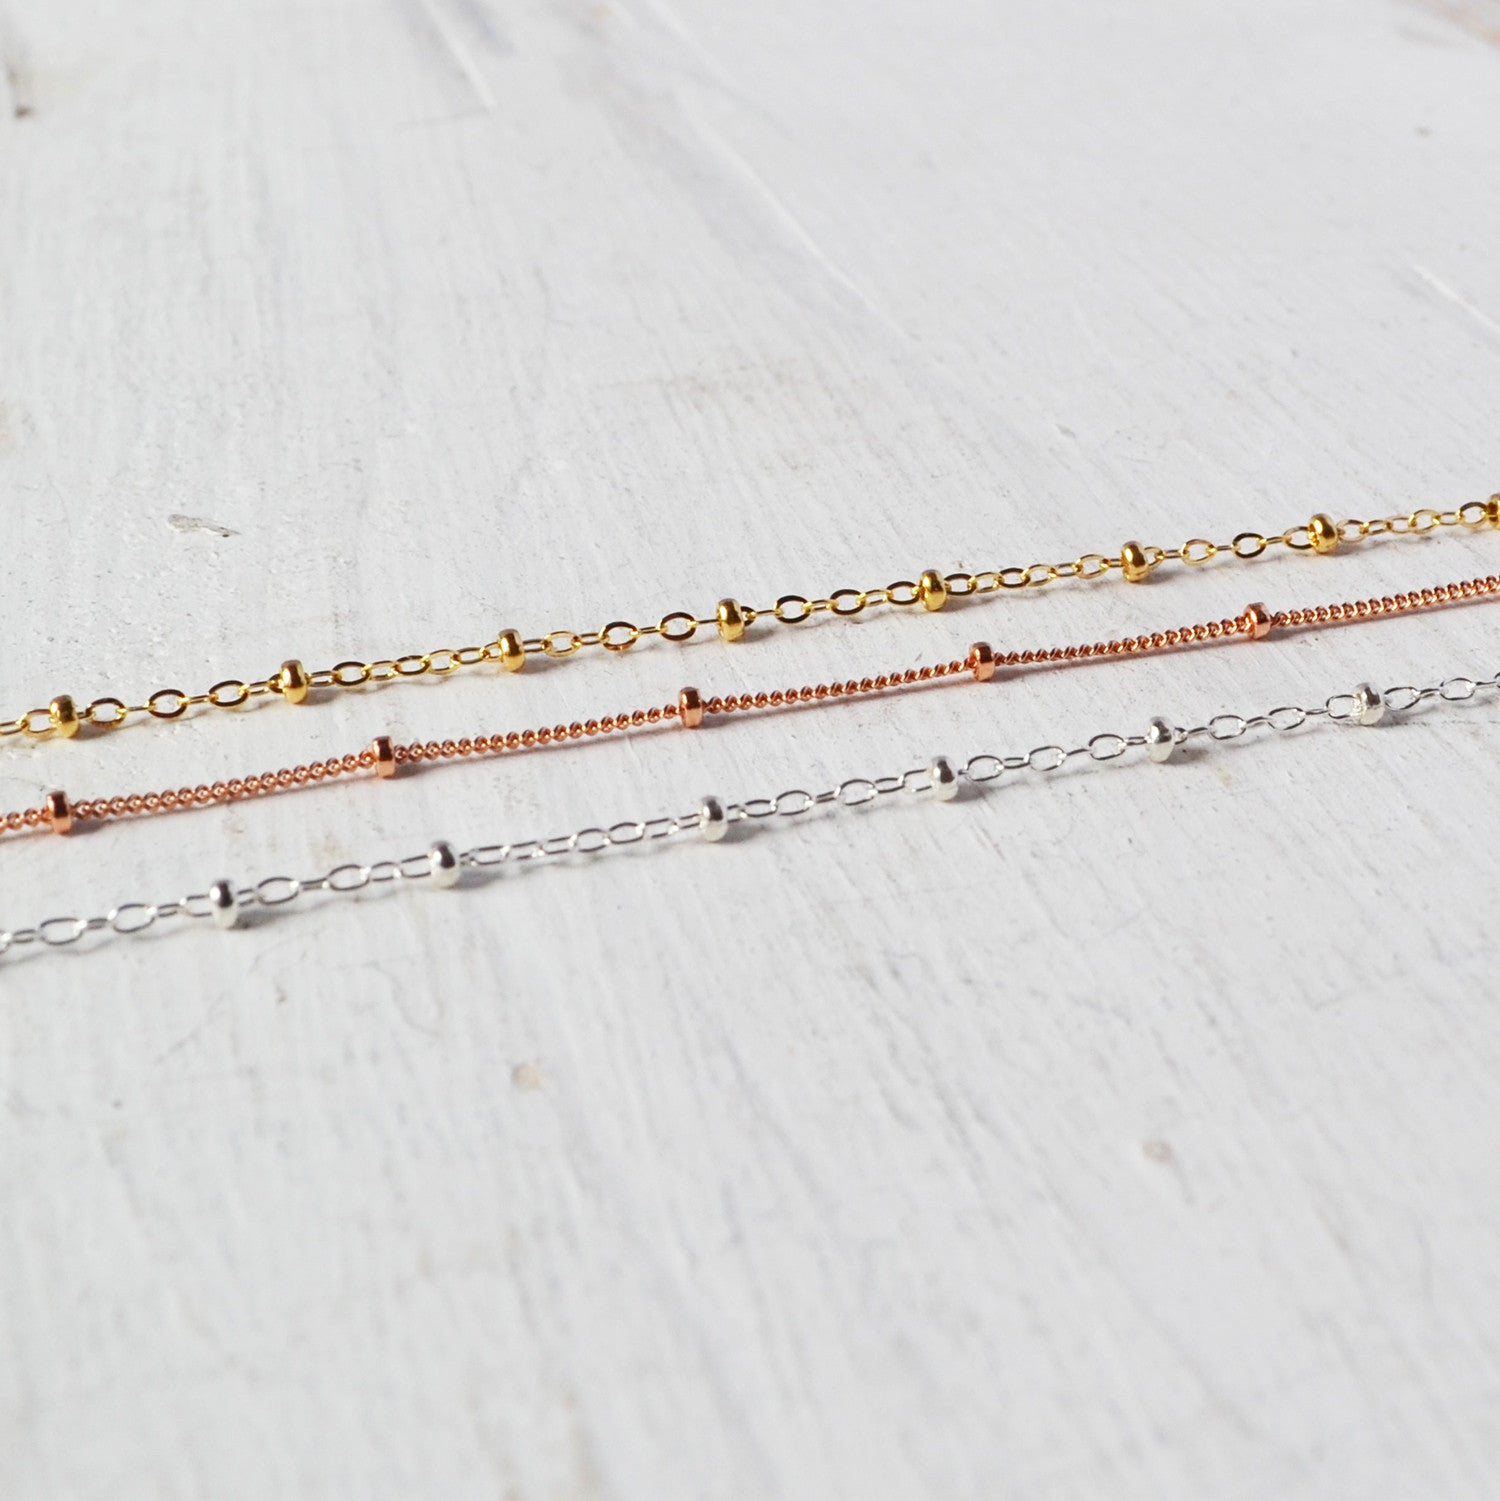 Ball and Chain Choker, Gold, Rose Gold, or Silver